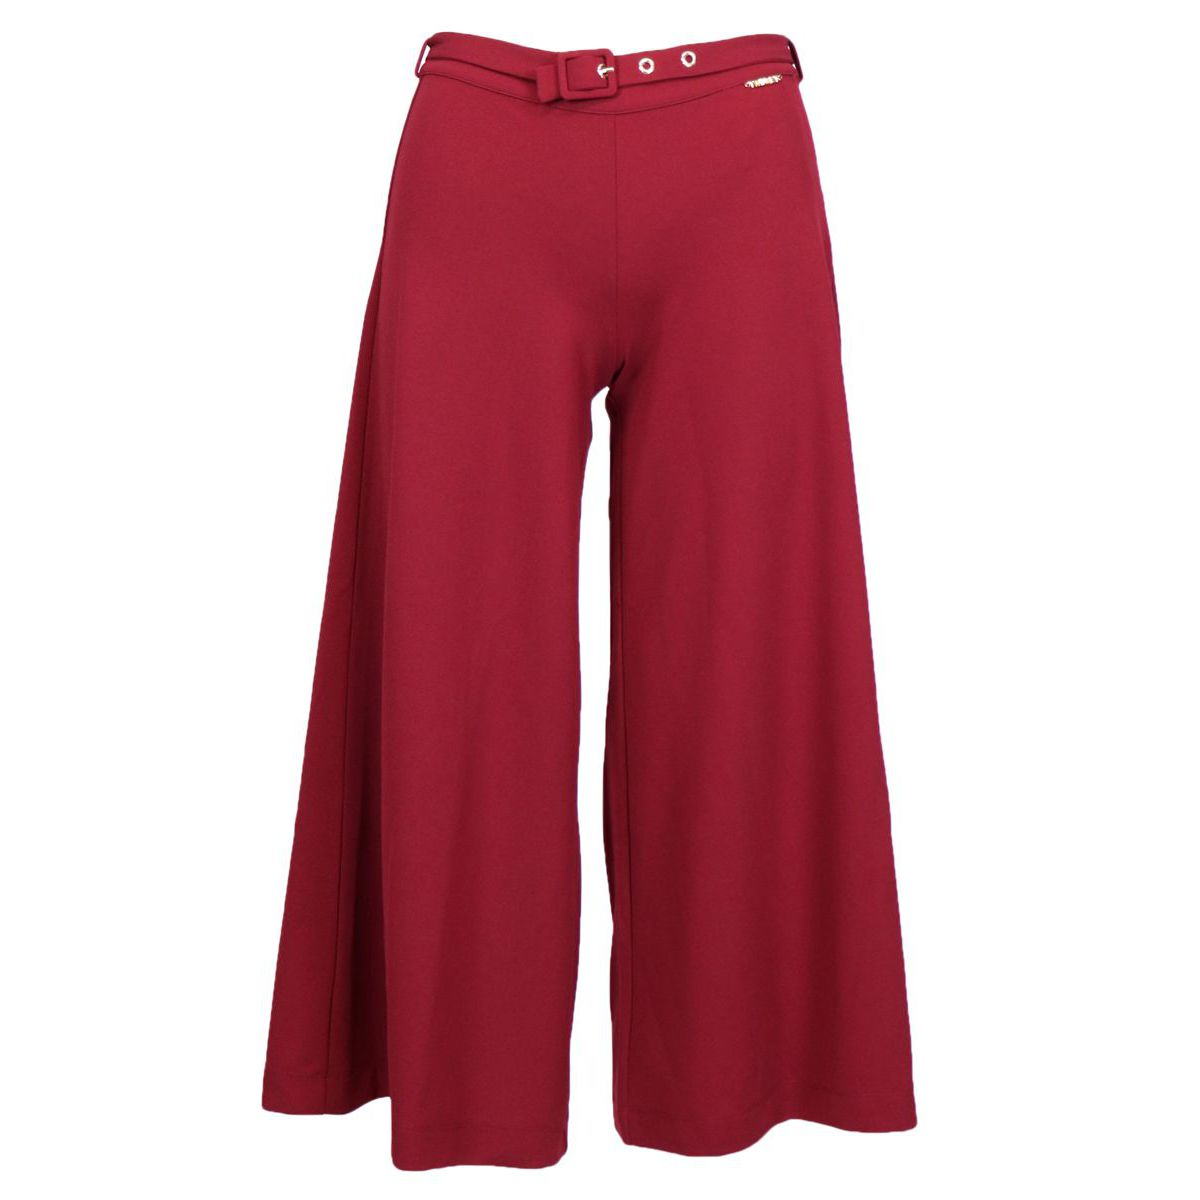 Palazzo pants in Milan stitch with belt Bordeaux Twin-Set